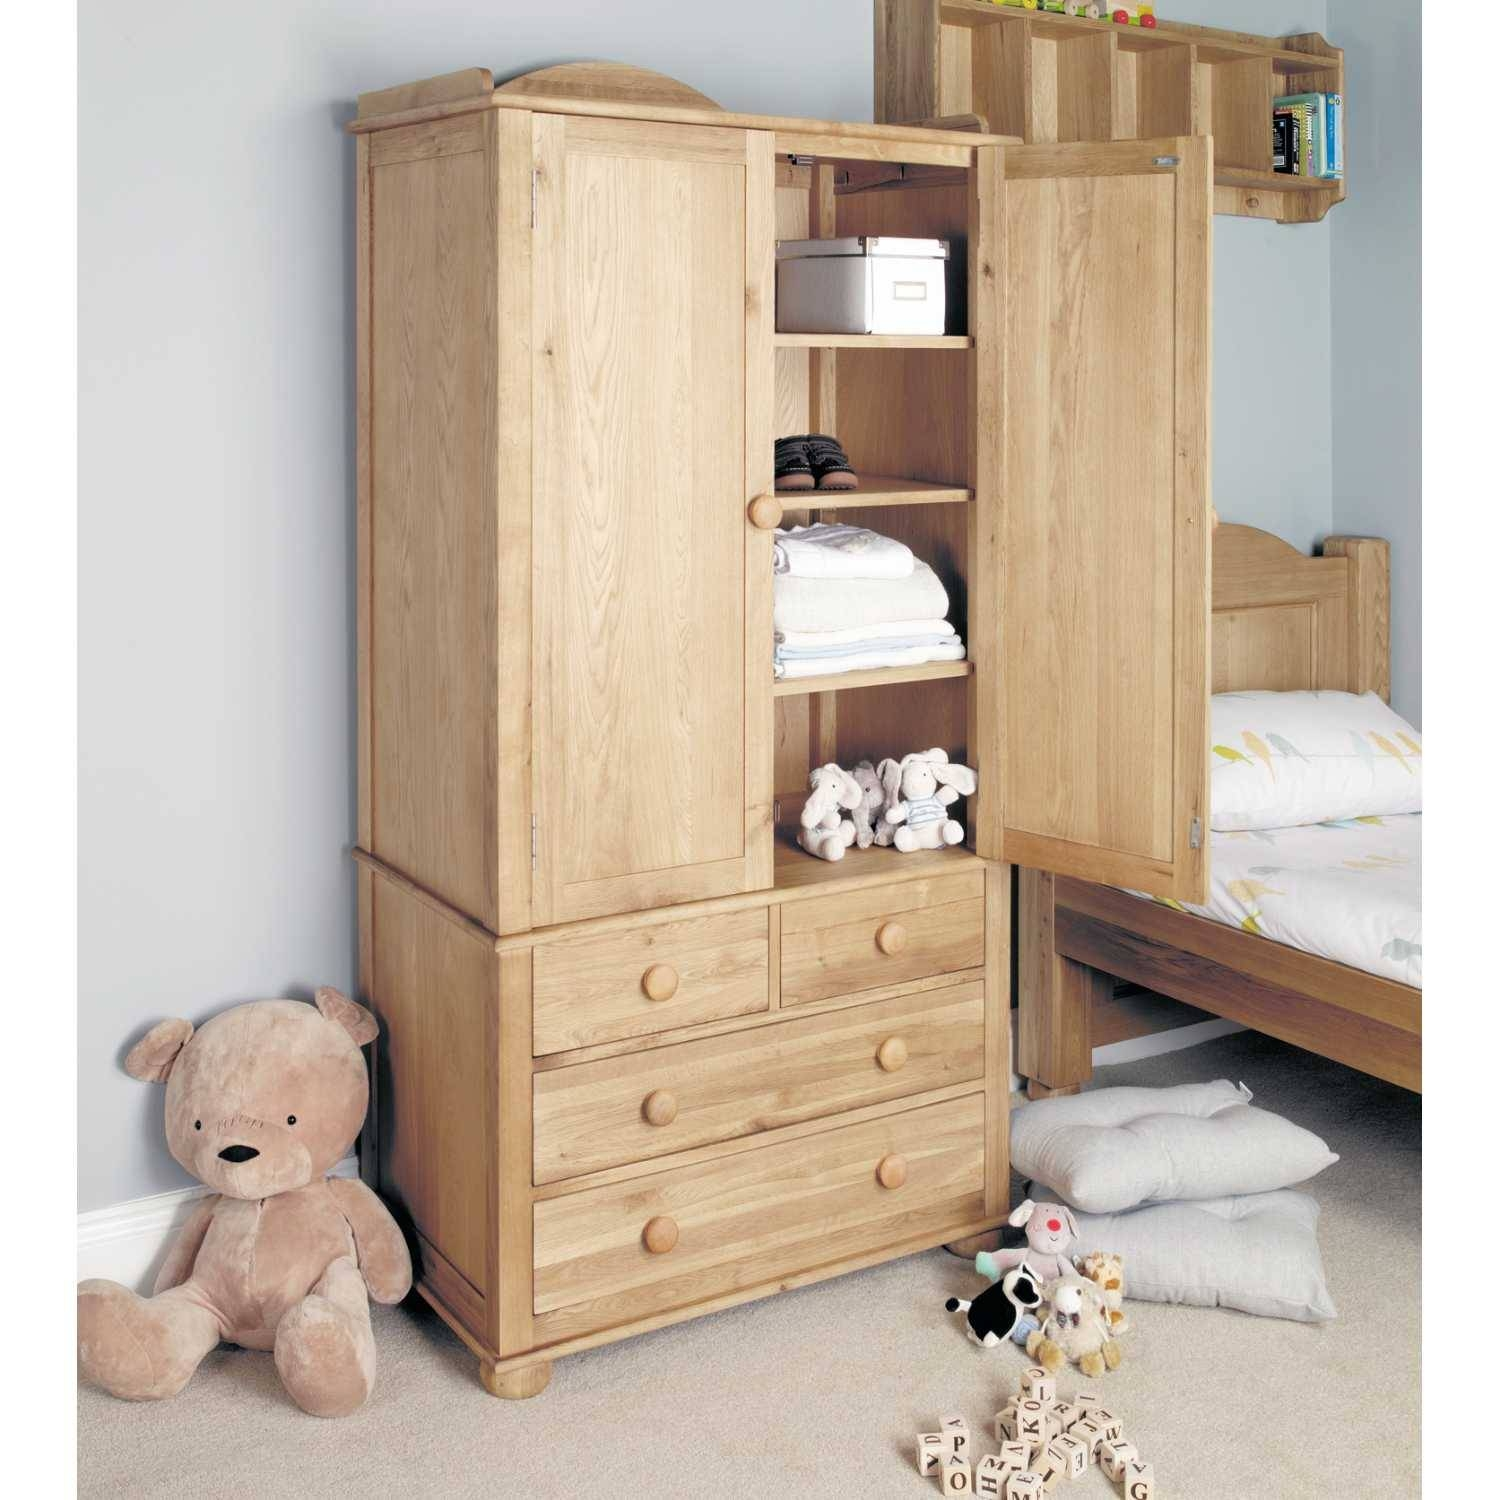 Wardrobes For Kids. China White Wardrobe Kids China White Wardrobe regarding Double Wardrobe With Drawers And Shelves (Image 27 of 30)